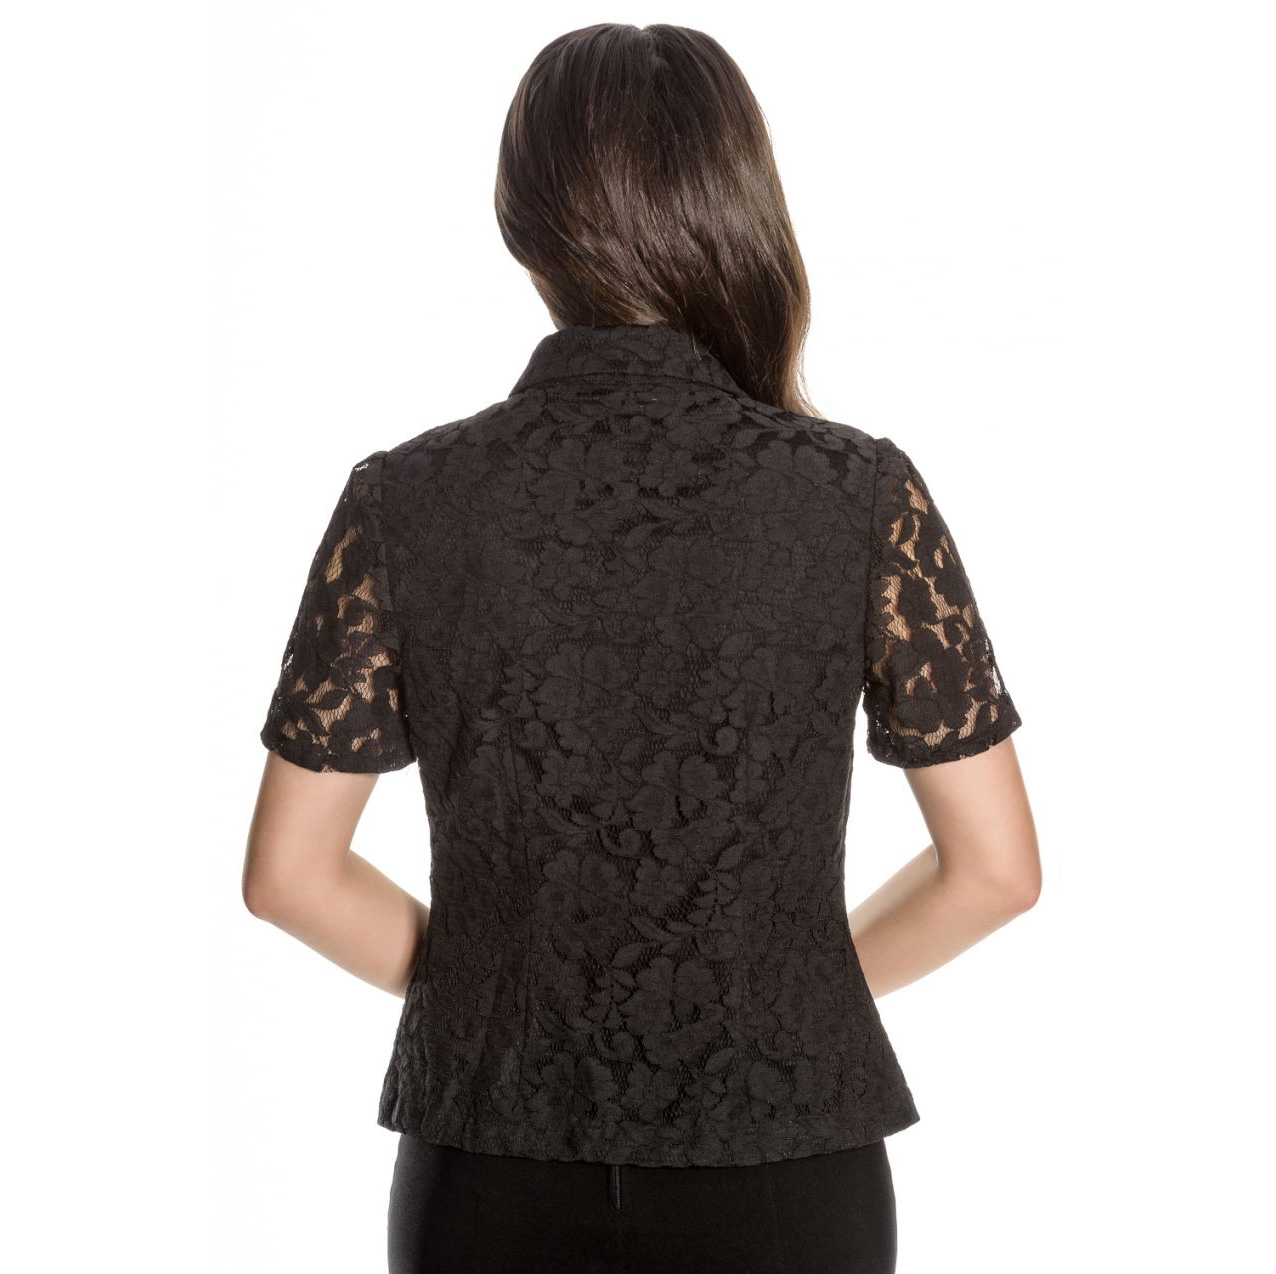 Hell-Bunny-Spin-Doctor-Vampire-Gothic-Shirt-Top-ROWENA-Lace-Blouse-All-Sizes Indexbild 21